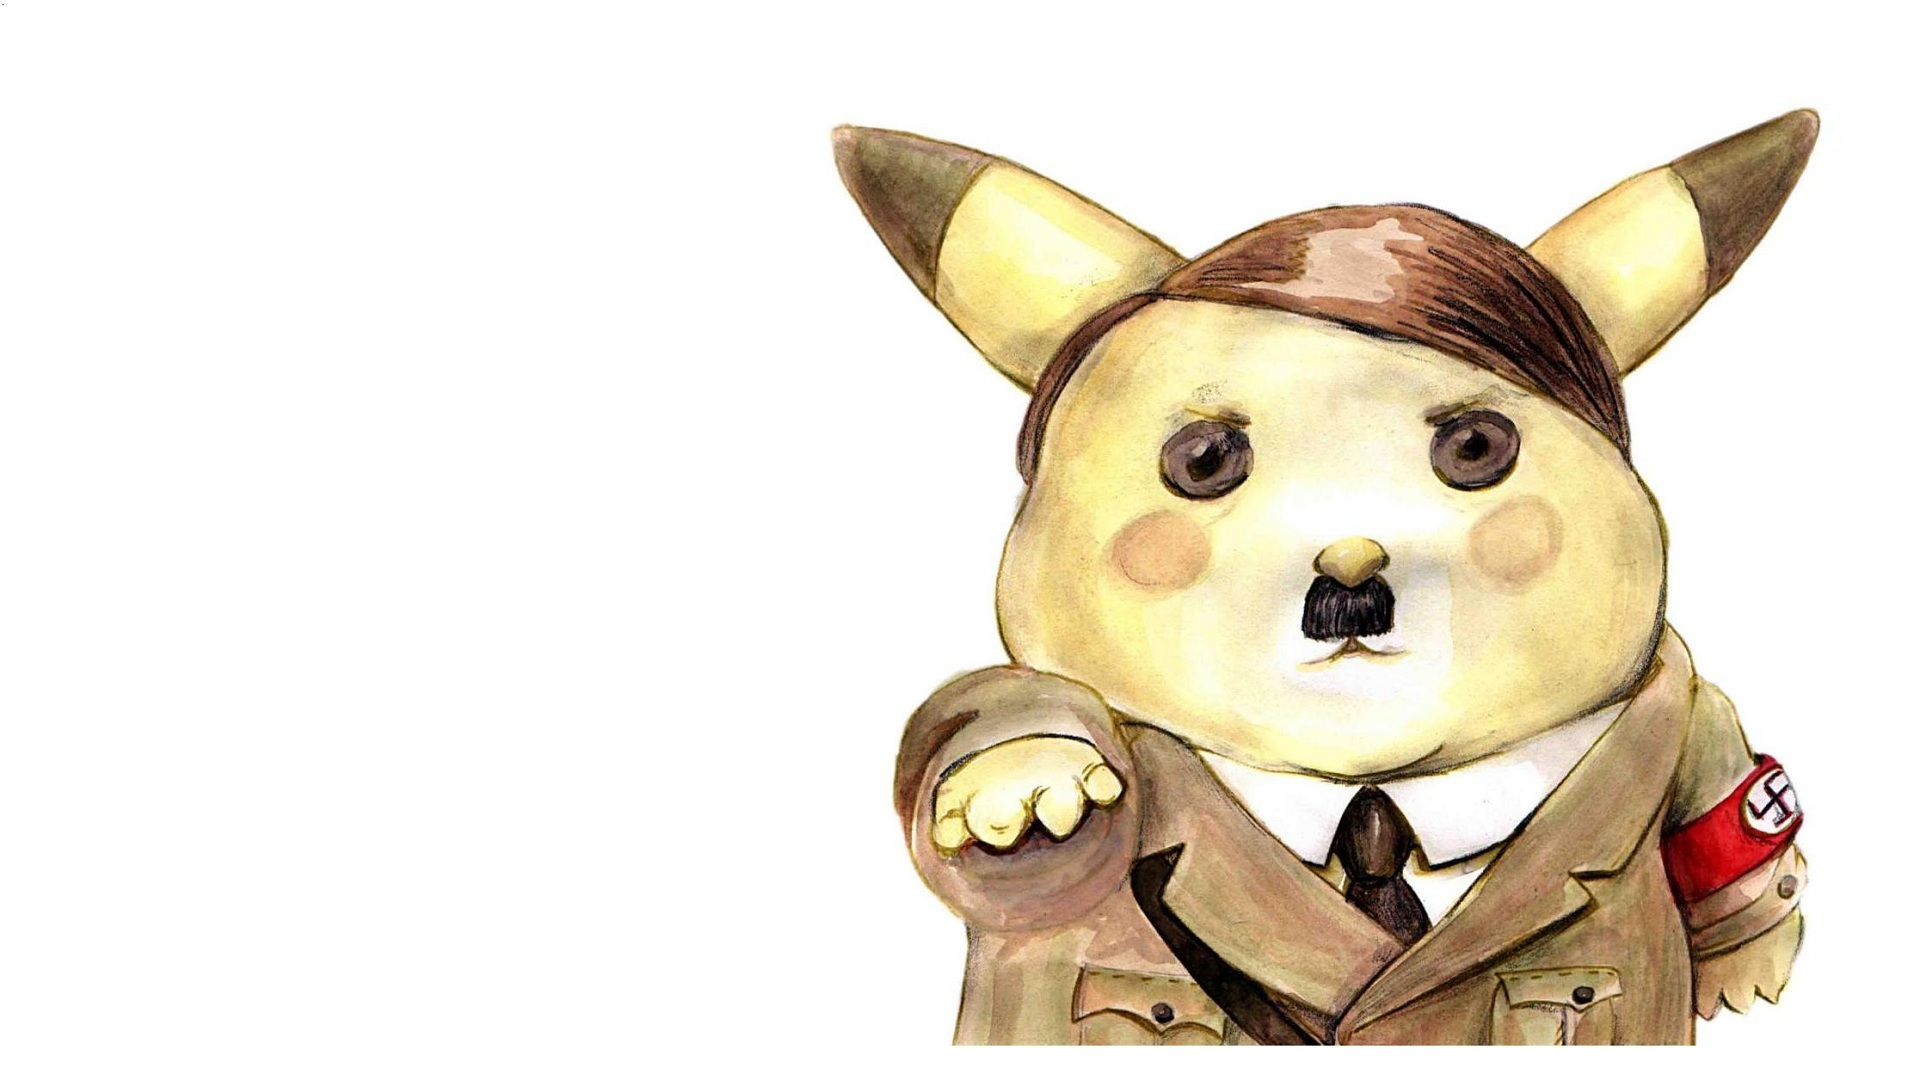 Pikachu funny Adolf Hitler HD Wallpaper